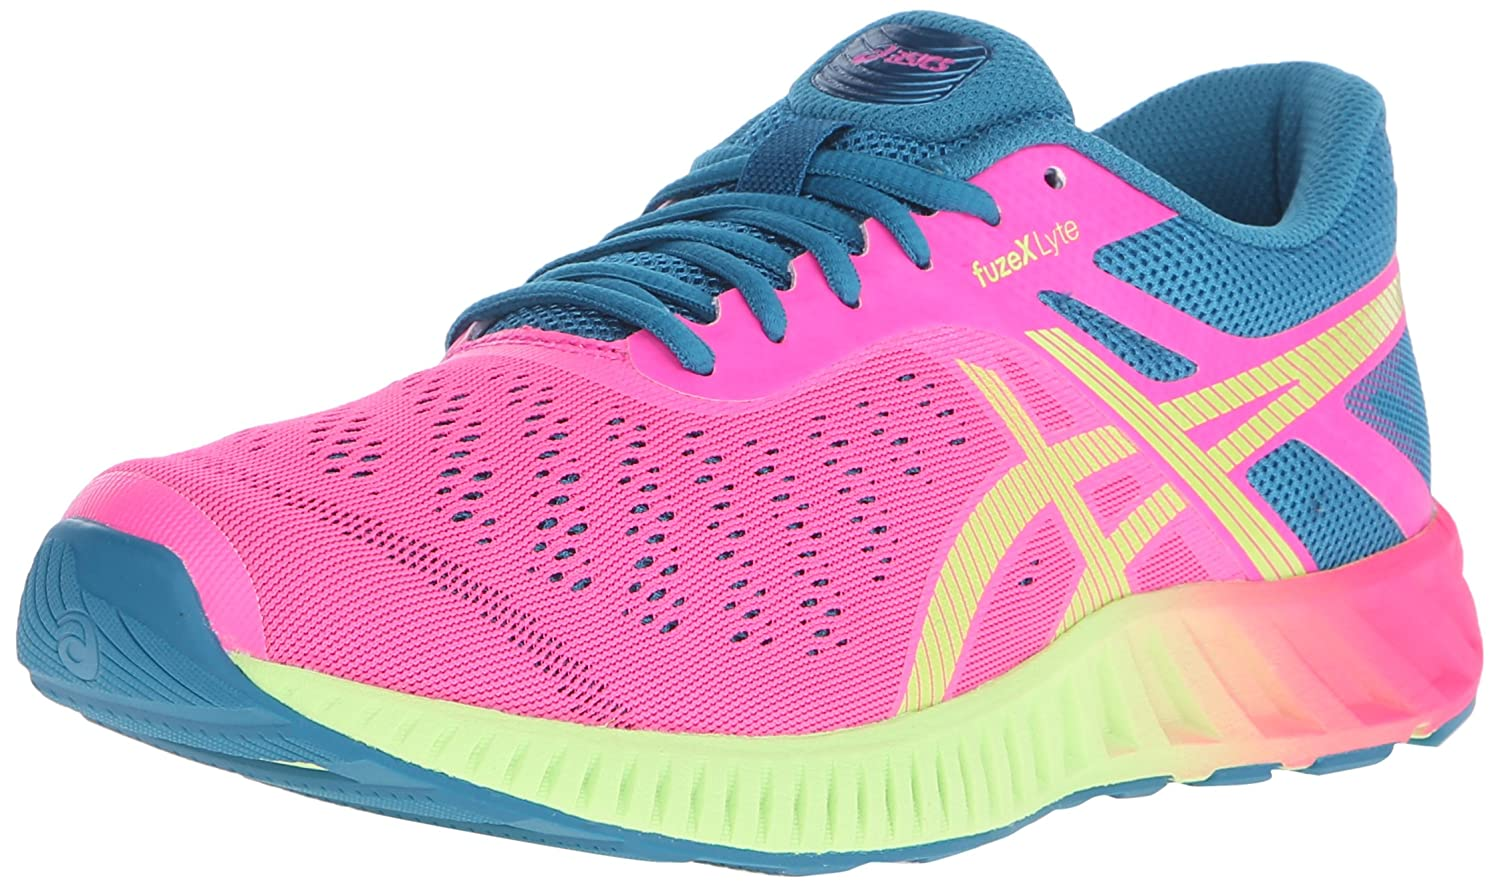 ASICS Women's fuzeX Lyte Running Shoe B00YB0K95G 6 B(M) US|Hot Pink/Sharp Green/Ocean Depths